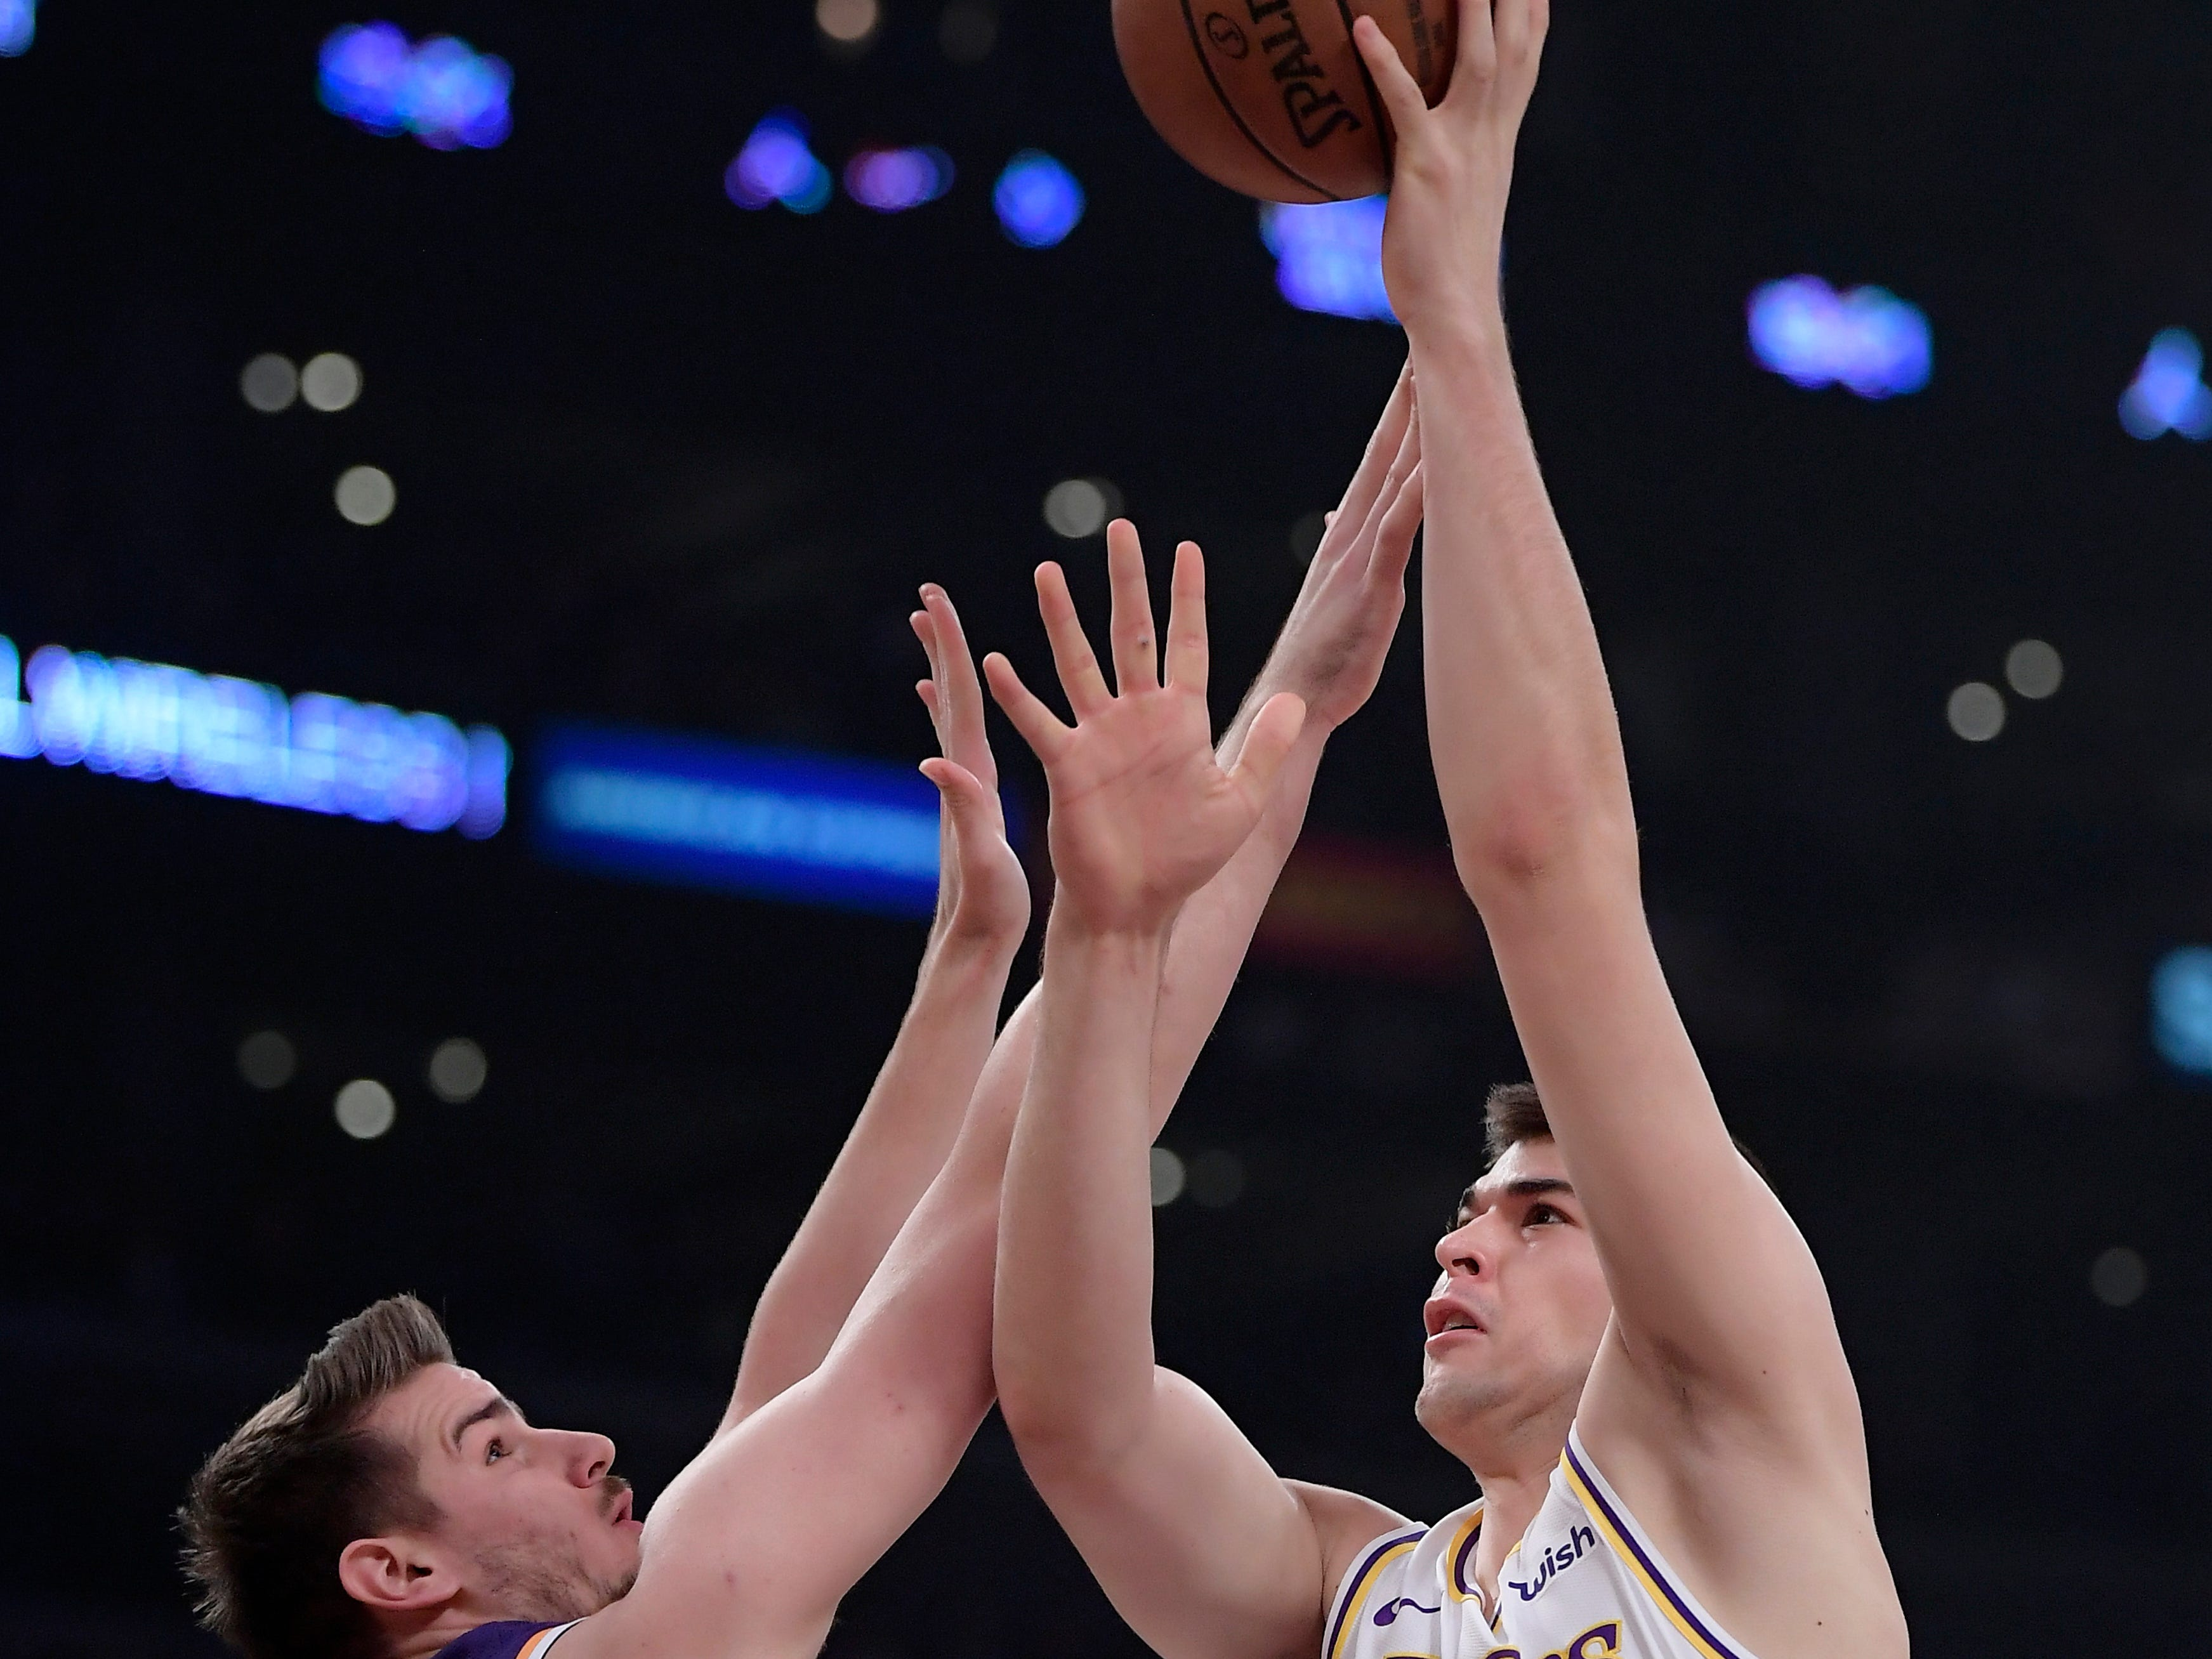 Los Angeles Lakers center Ivica Zubac, right, shoots as Phoenix Suns forward Dragan Bender defends during the first half on Sunday, Jan. 27, 2019, in Los Angeles. (AP Photo/Mark J. Terrill)